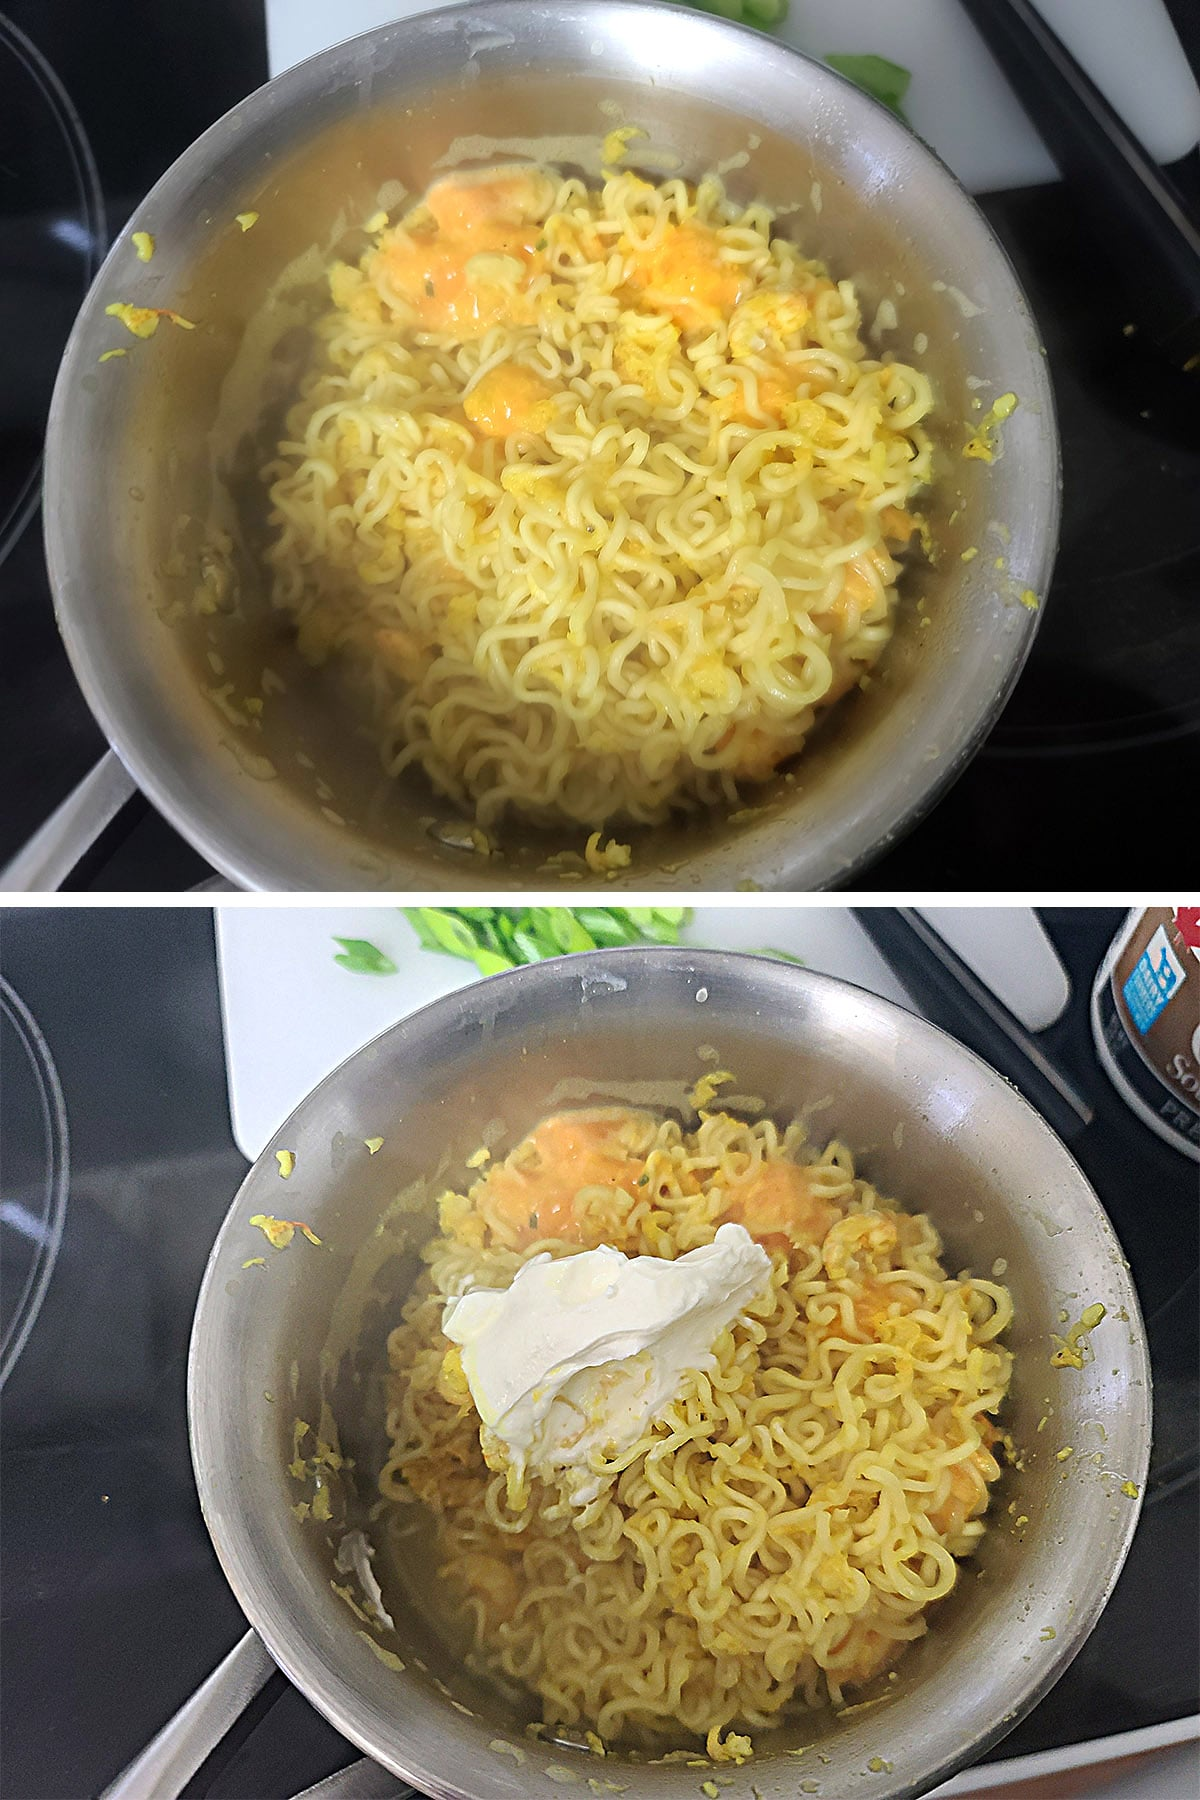 Sour cream is added to the strained noodles.